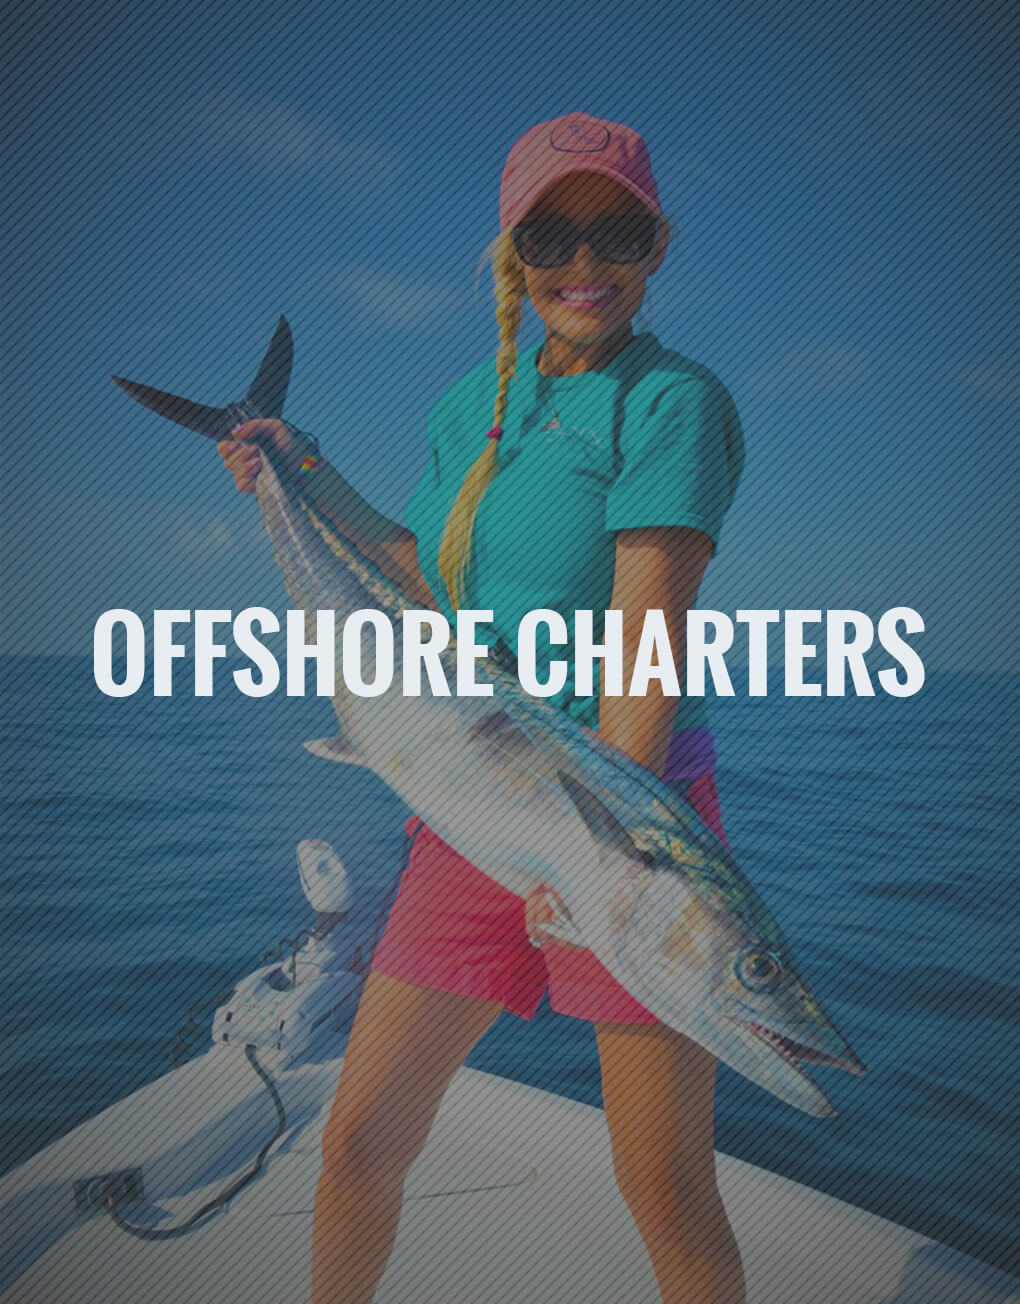 Offshore Fishing Charter Stuart, FL